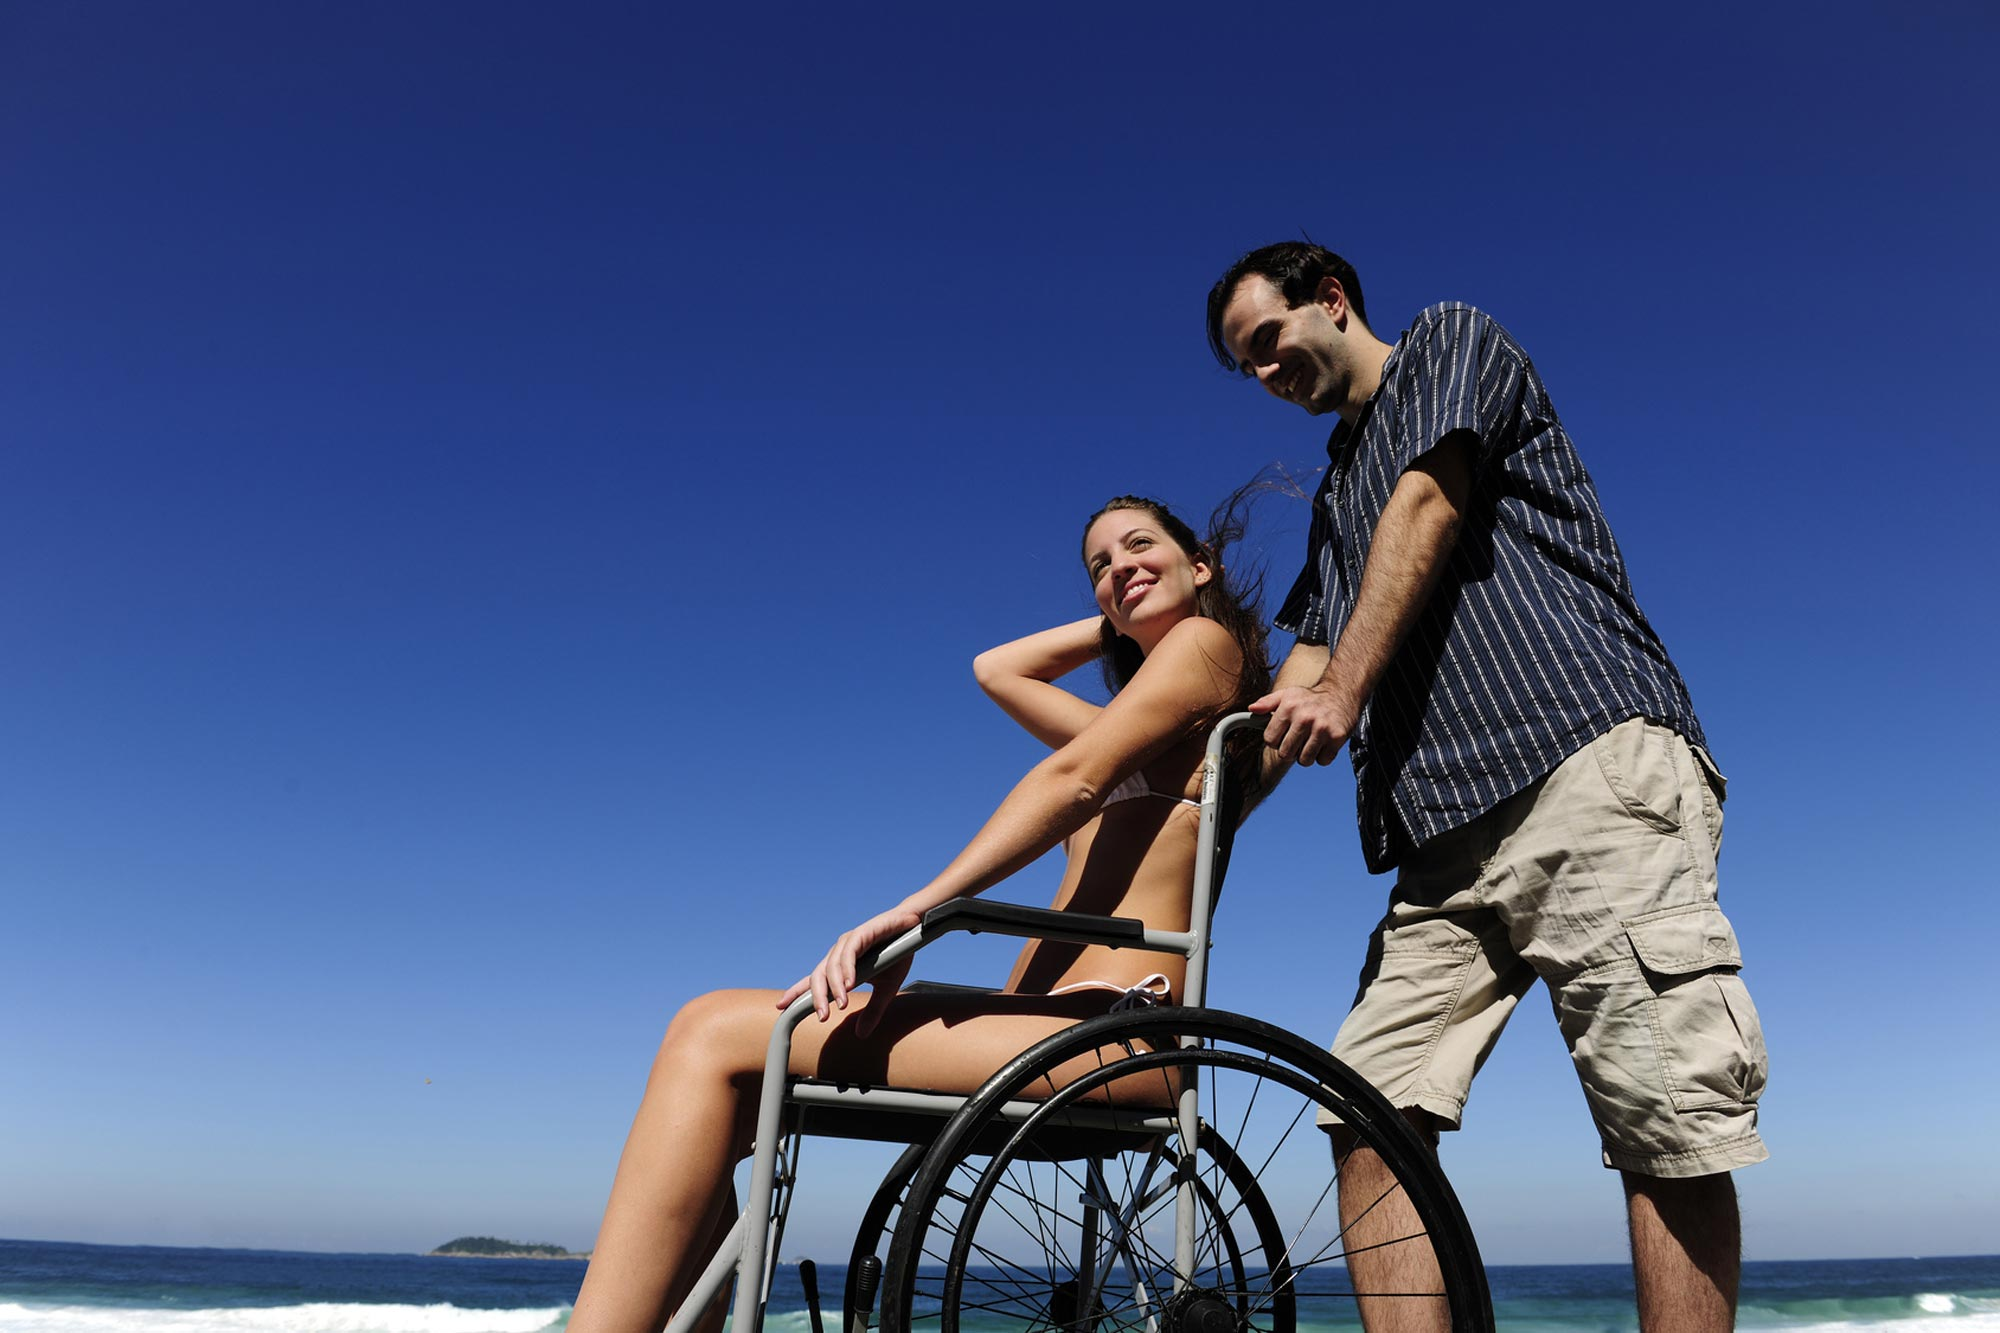 Disabled dating site in usa - Warsaw Local